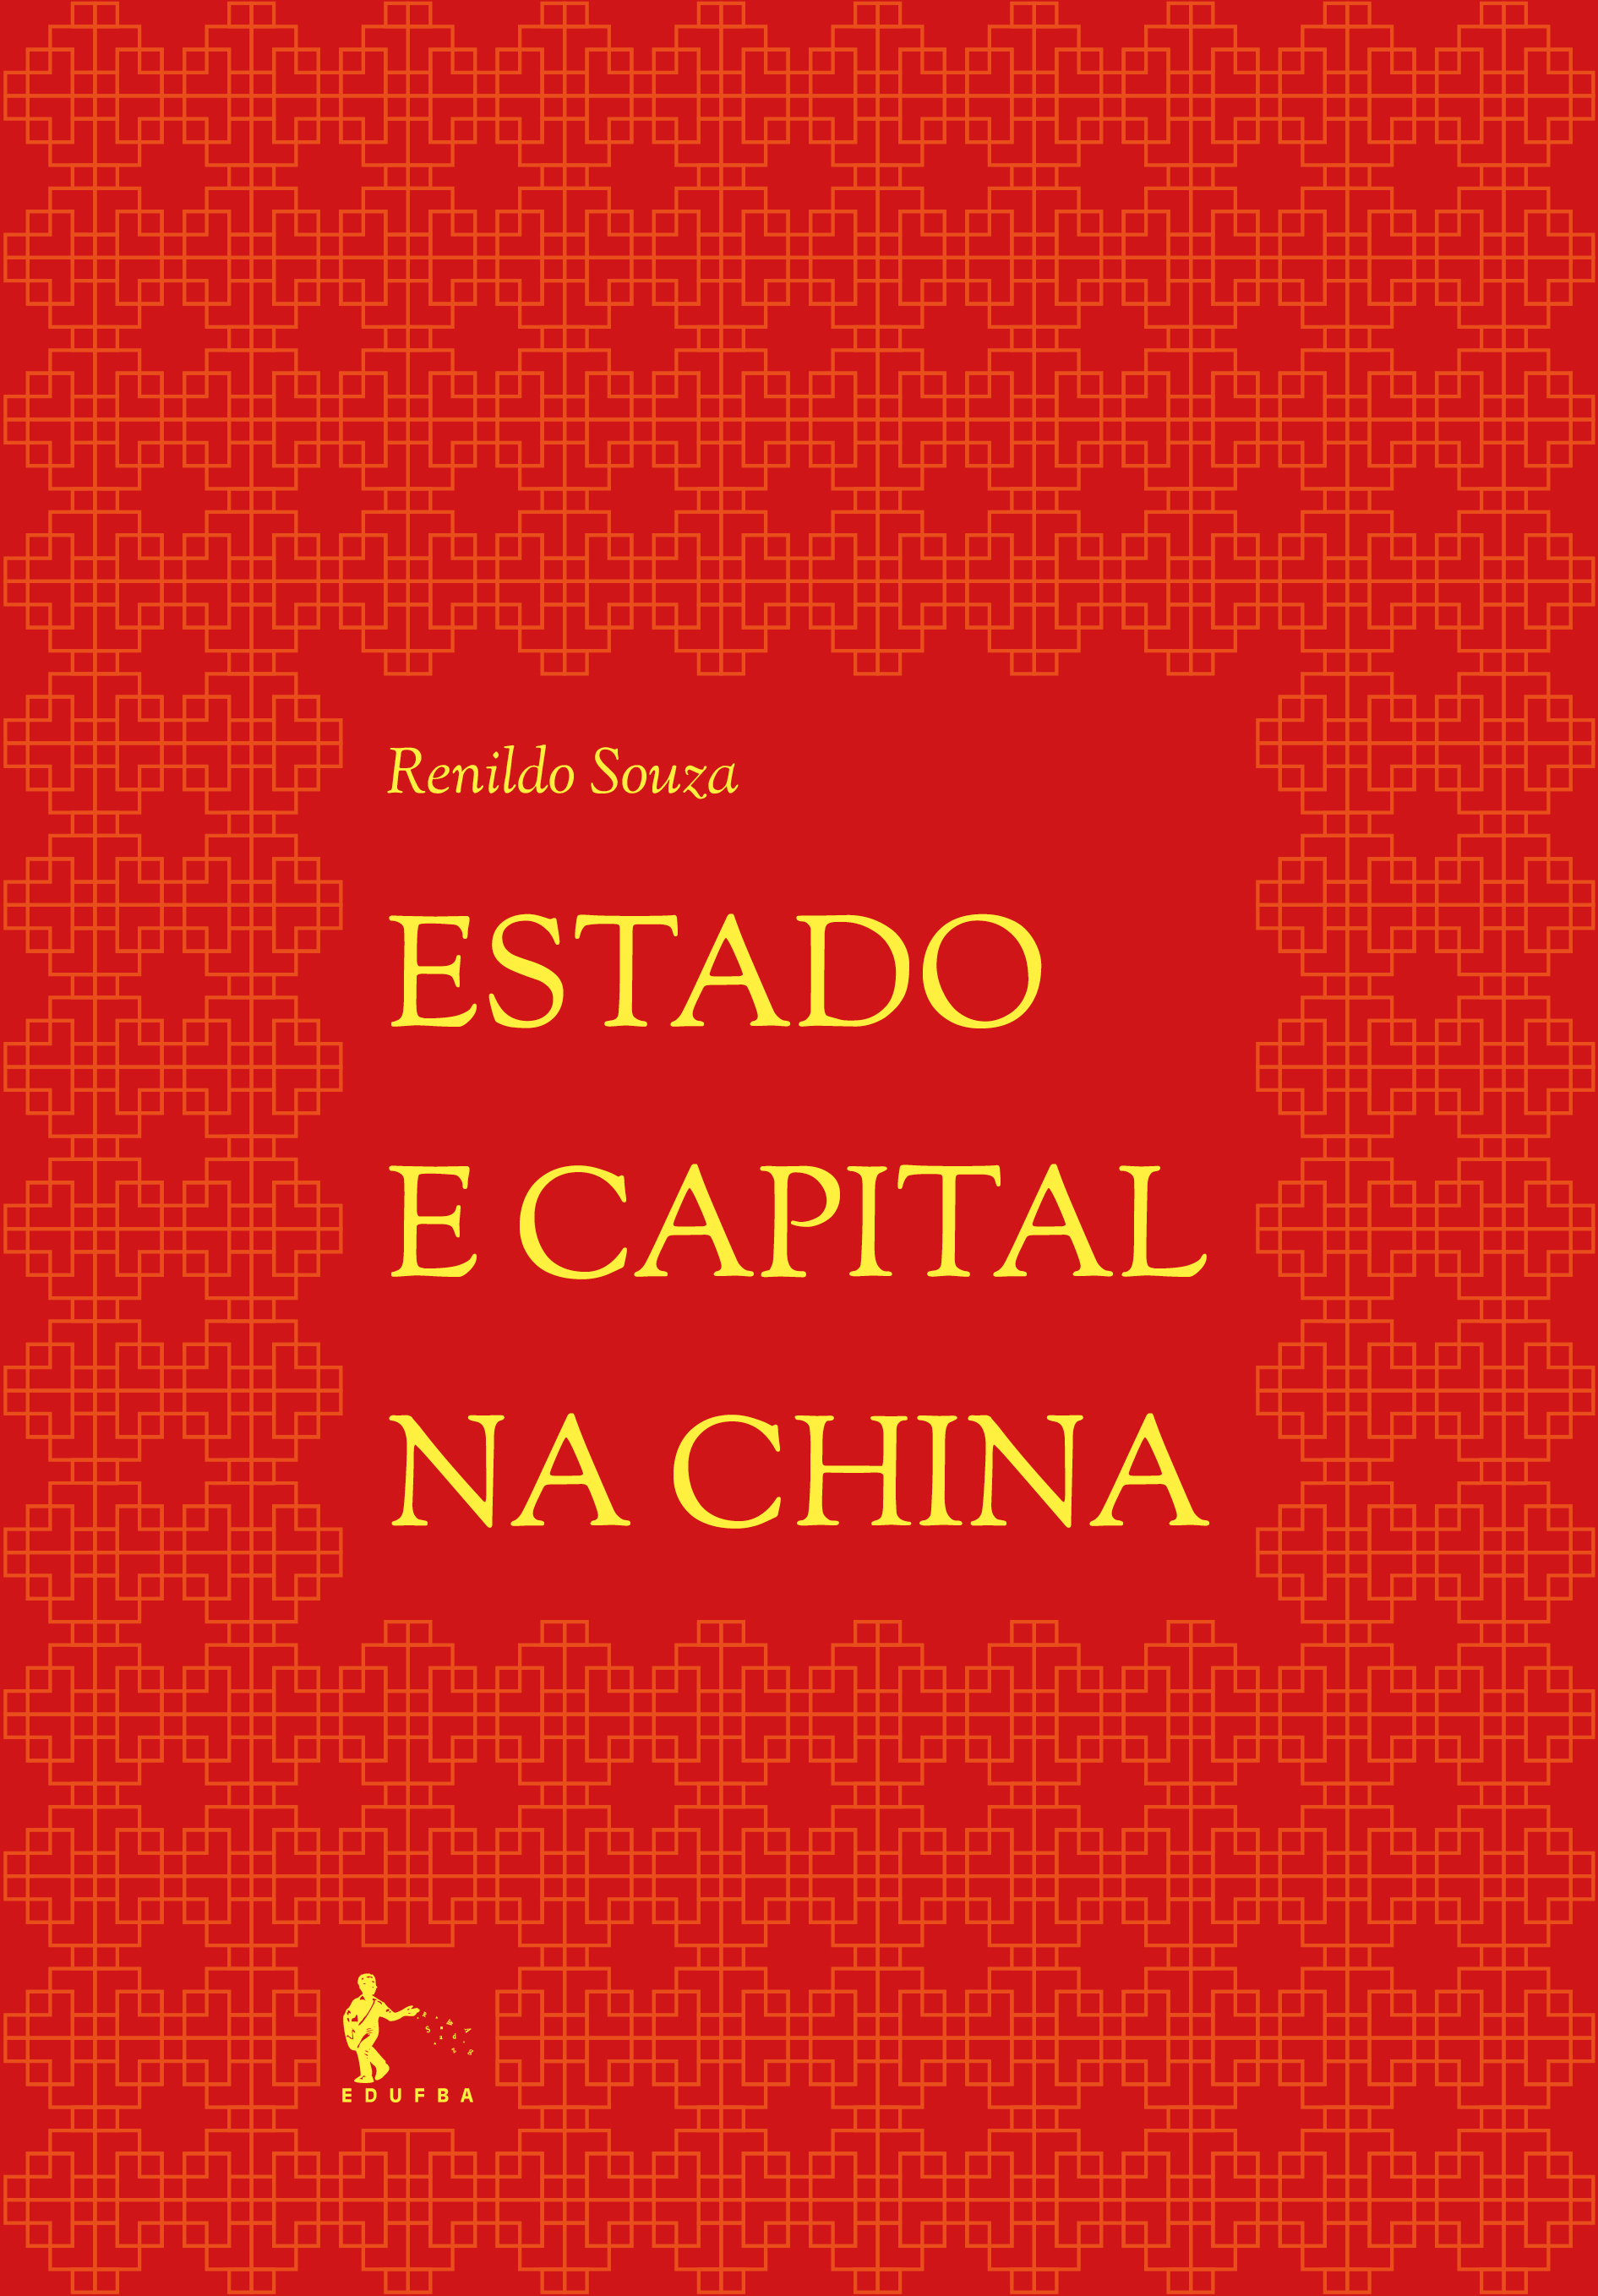 Estado e capital na China, livro de Renildo Souza